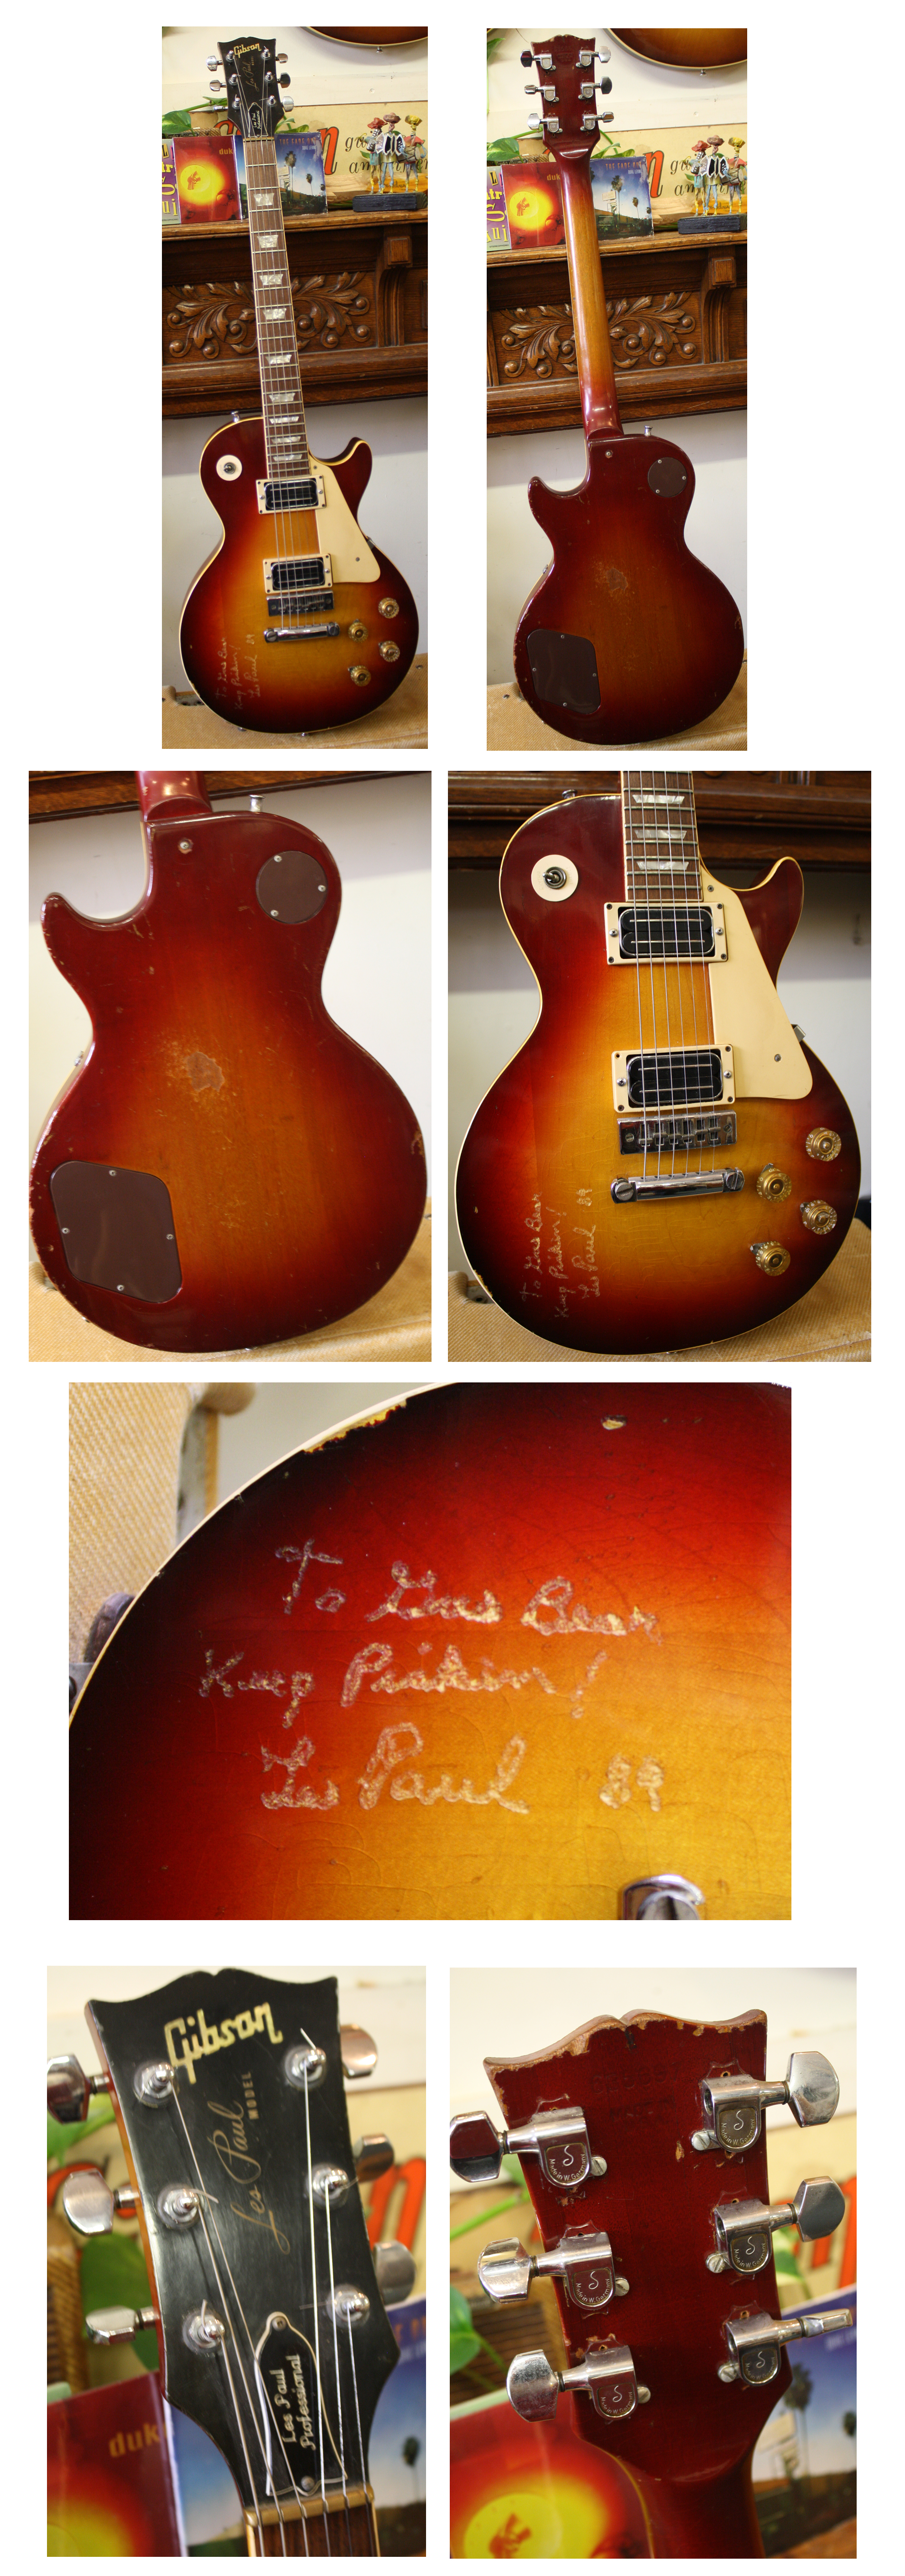 Lark Street Music Vintage Guitars Teaneck Nj 1967 Gibson Sg Wiring Harness 3750 Les Paul Deluxe Ca 1973 Cherry Sunburst Bill Lawrence Humbuckers Type Bridge Schallers Engraved Autograph Vgc Hsc